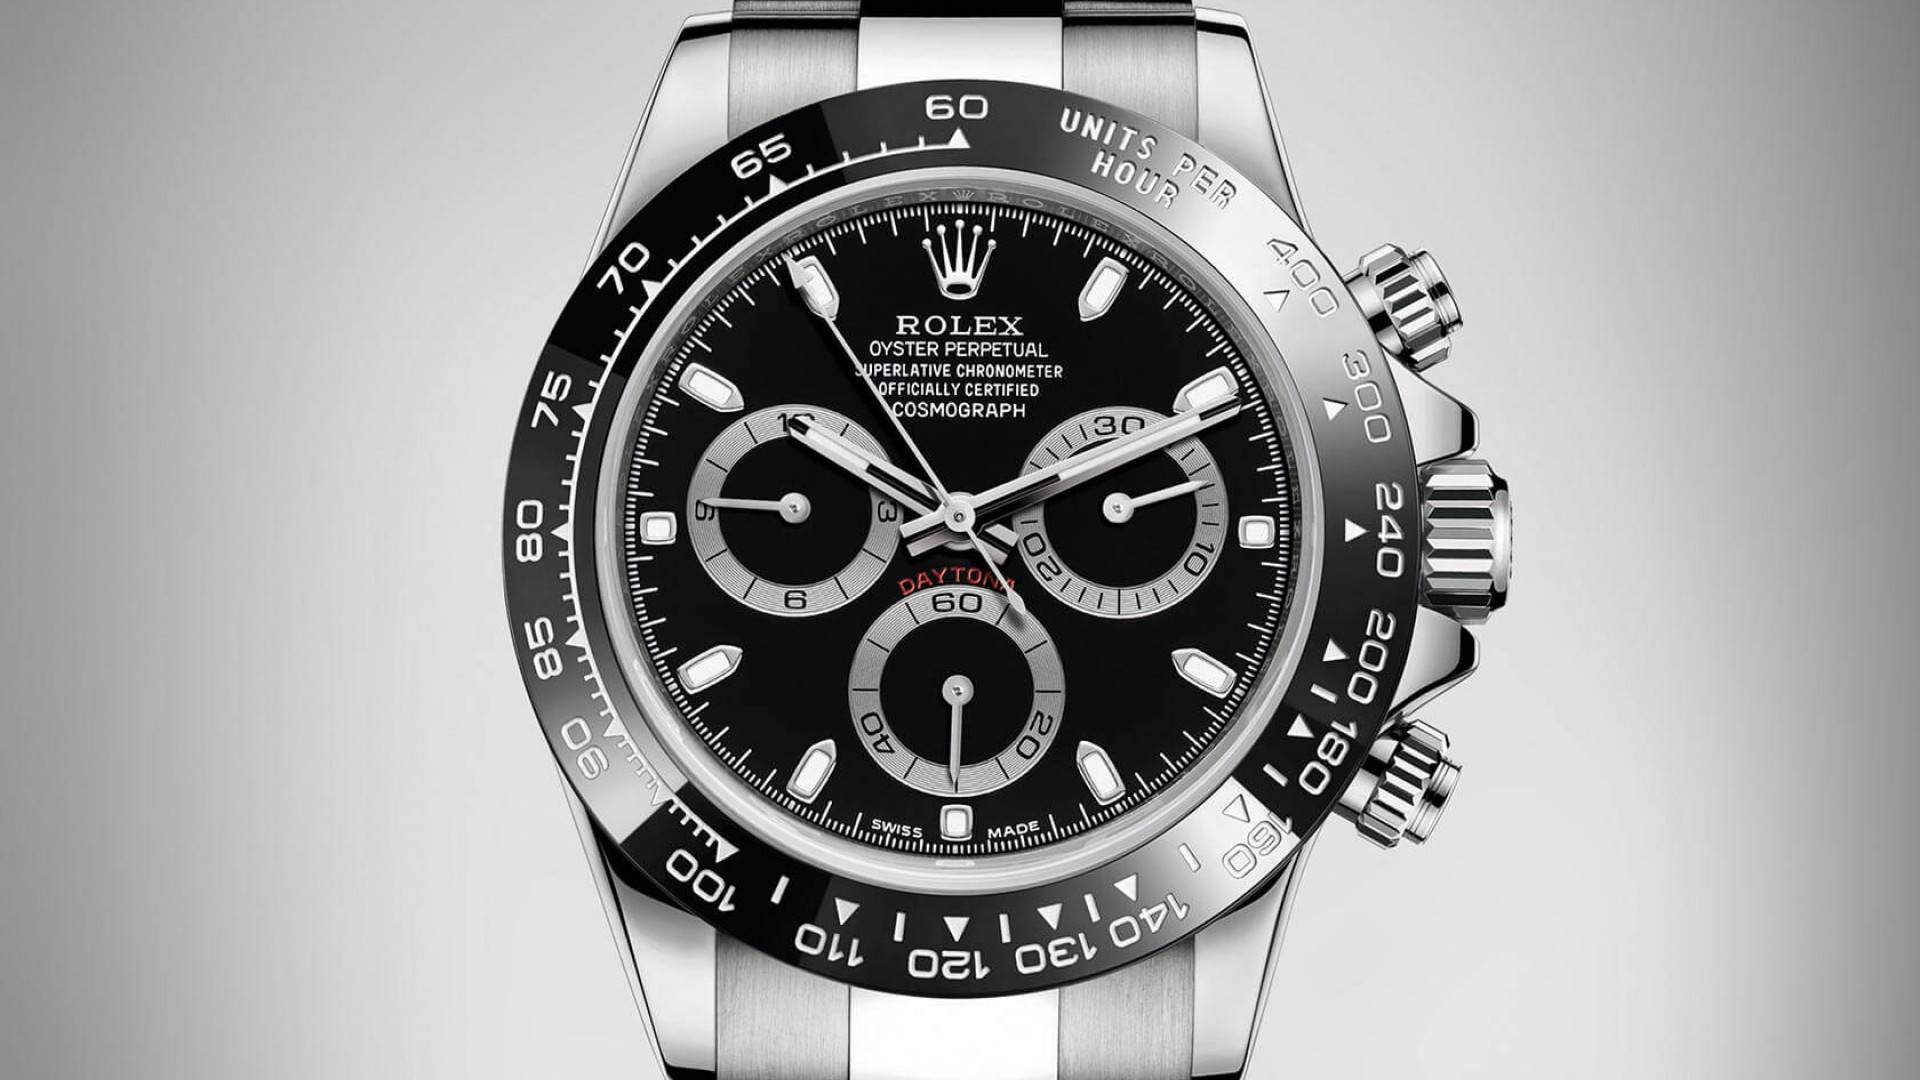 Rolexs Watches Six Rolex Watches To Help You Turn A Profit Square Mile